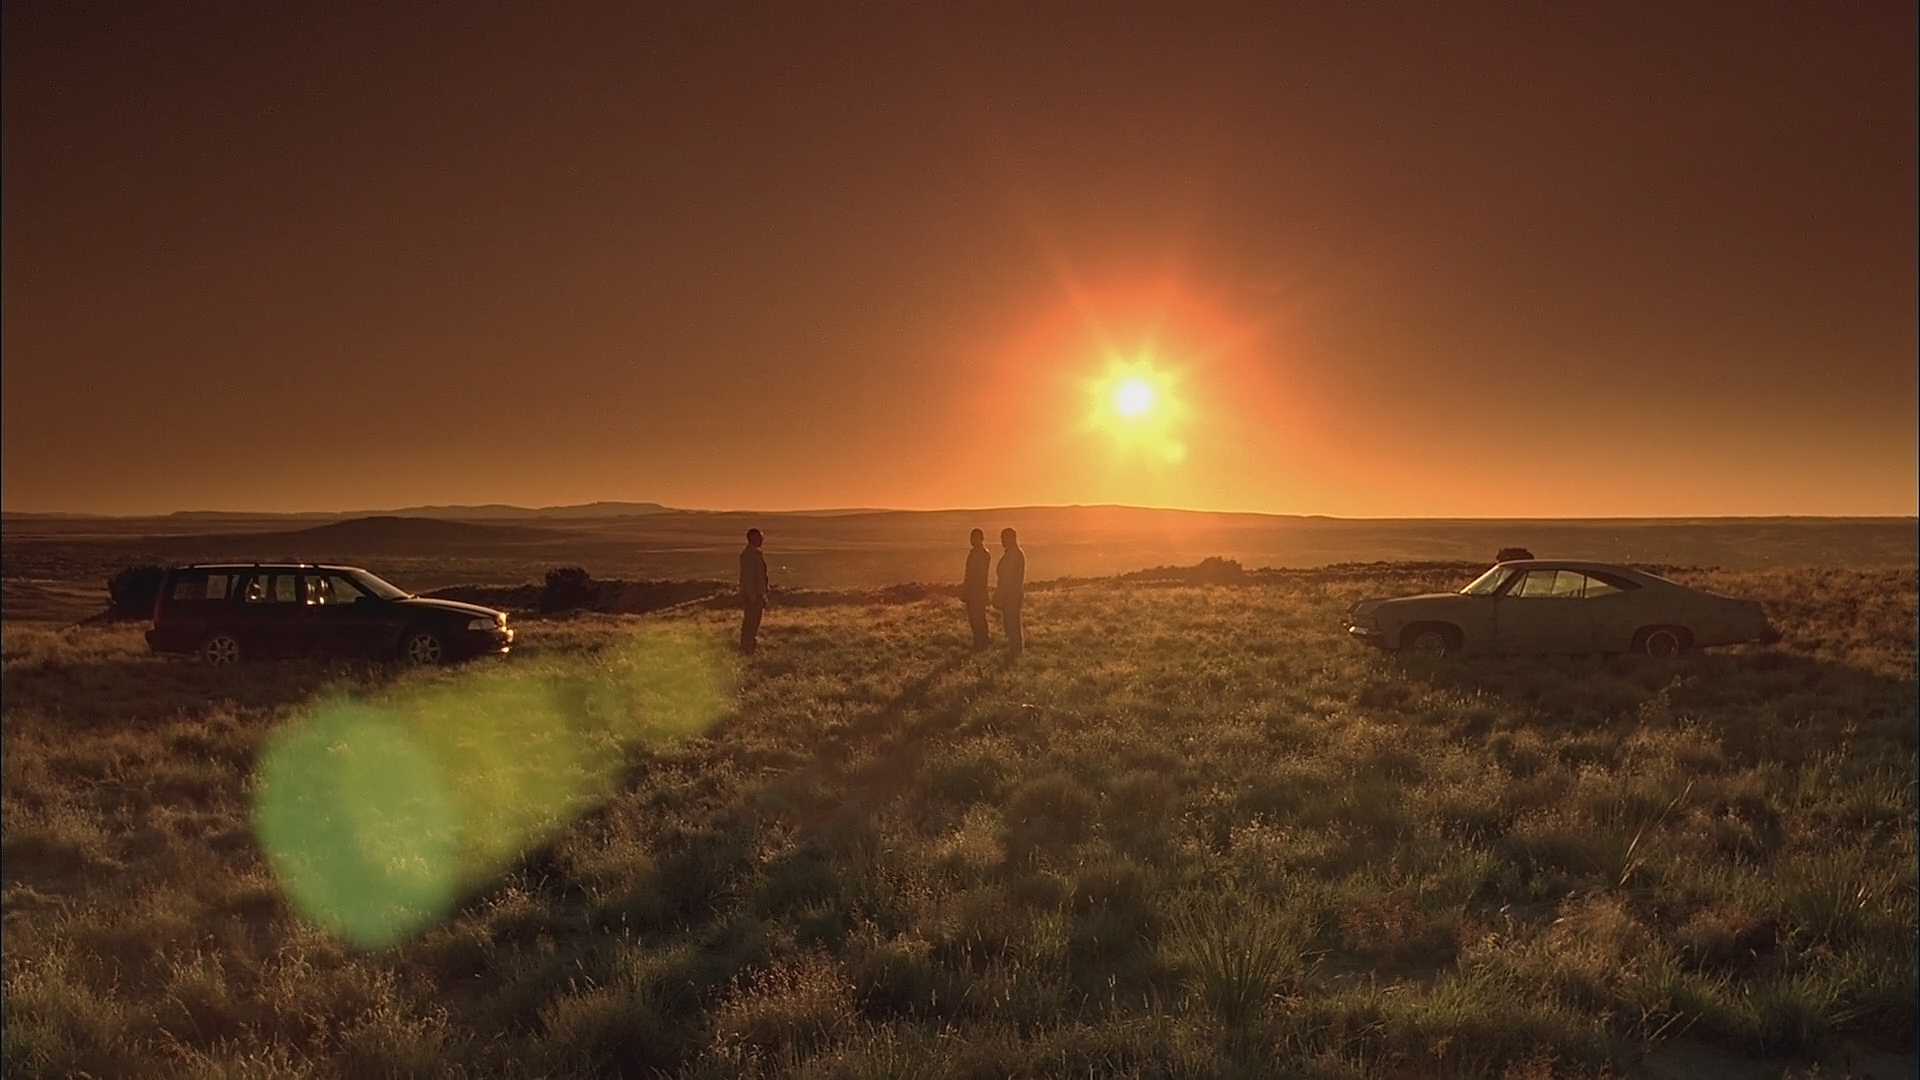 Production still from  Breaking Bad  featuring the stunning New Mexico backdrop at sunset - image via  Google .